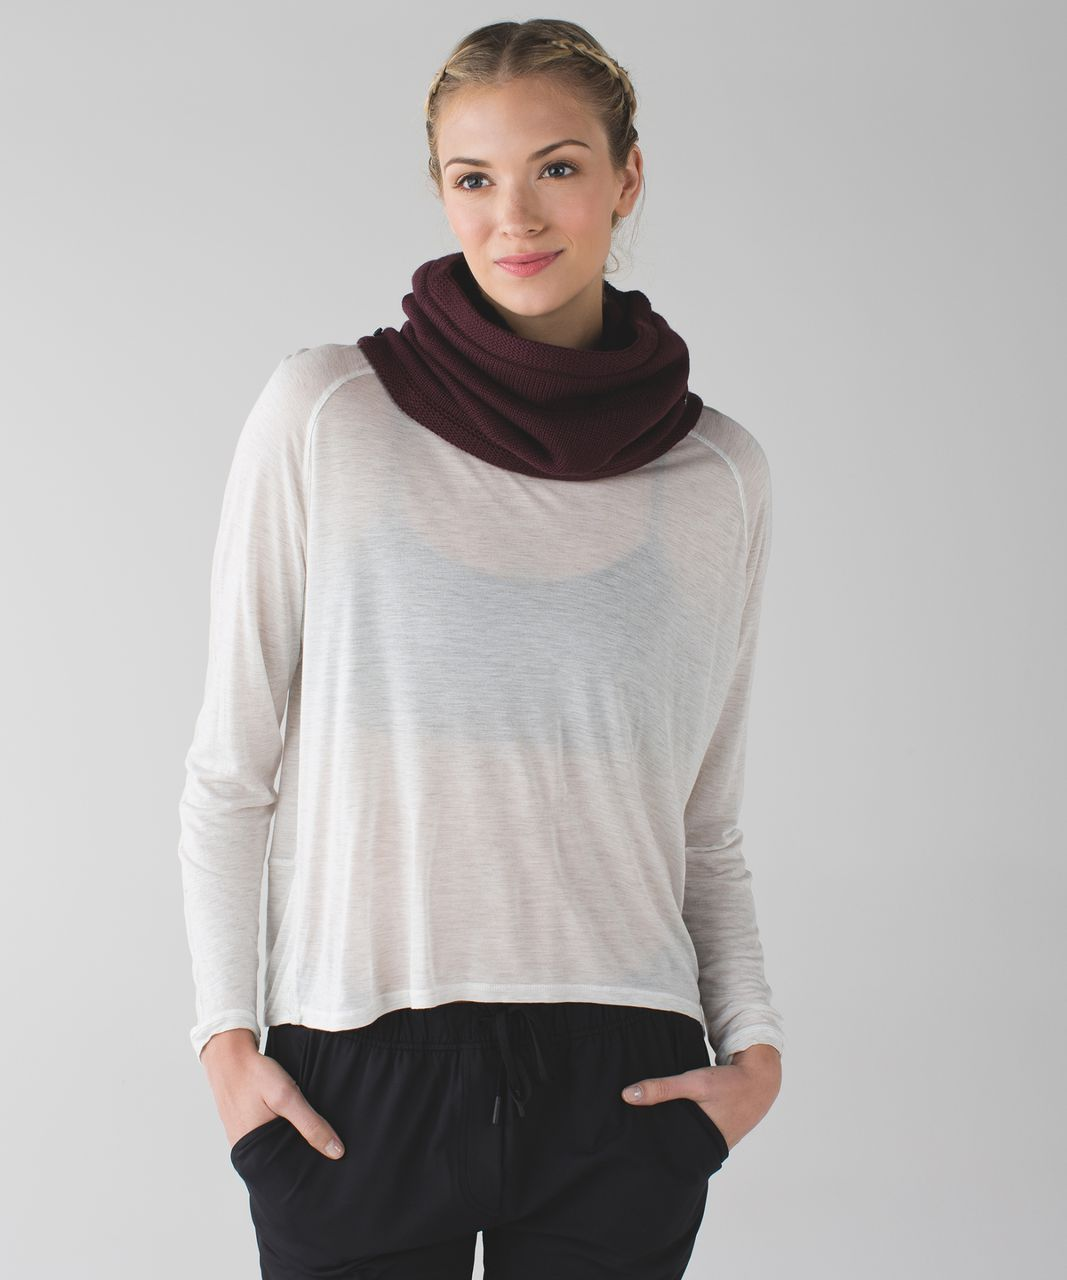 Lululemon Snow Amazing Neck Warmer *Sherpa - Bordeaux Drama / Berry Rumble / Bleached Coral